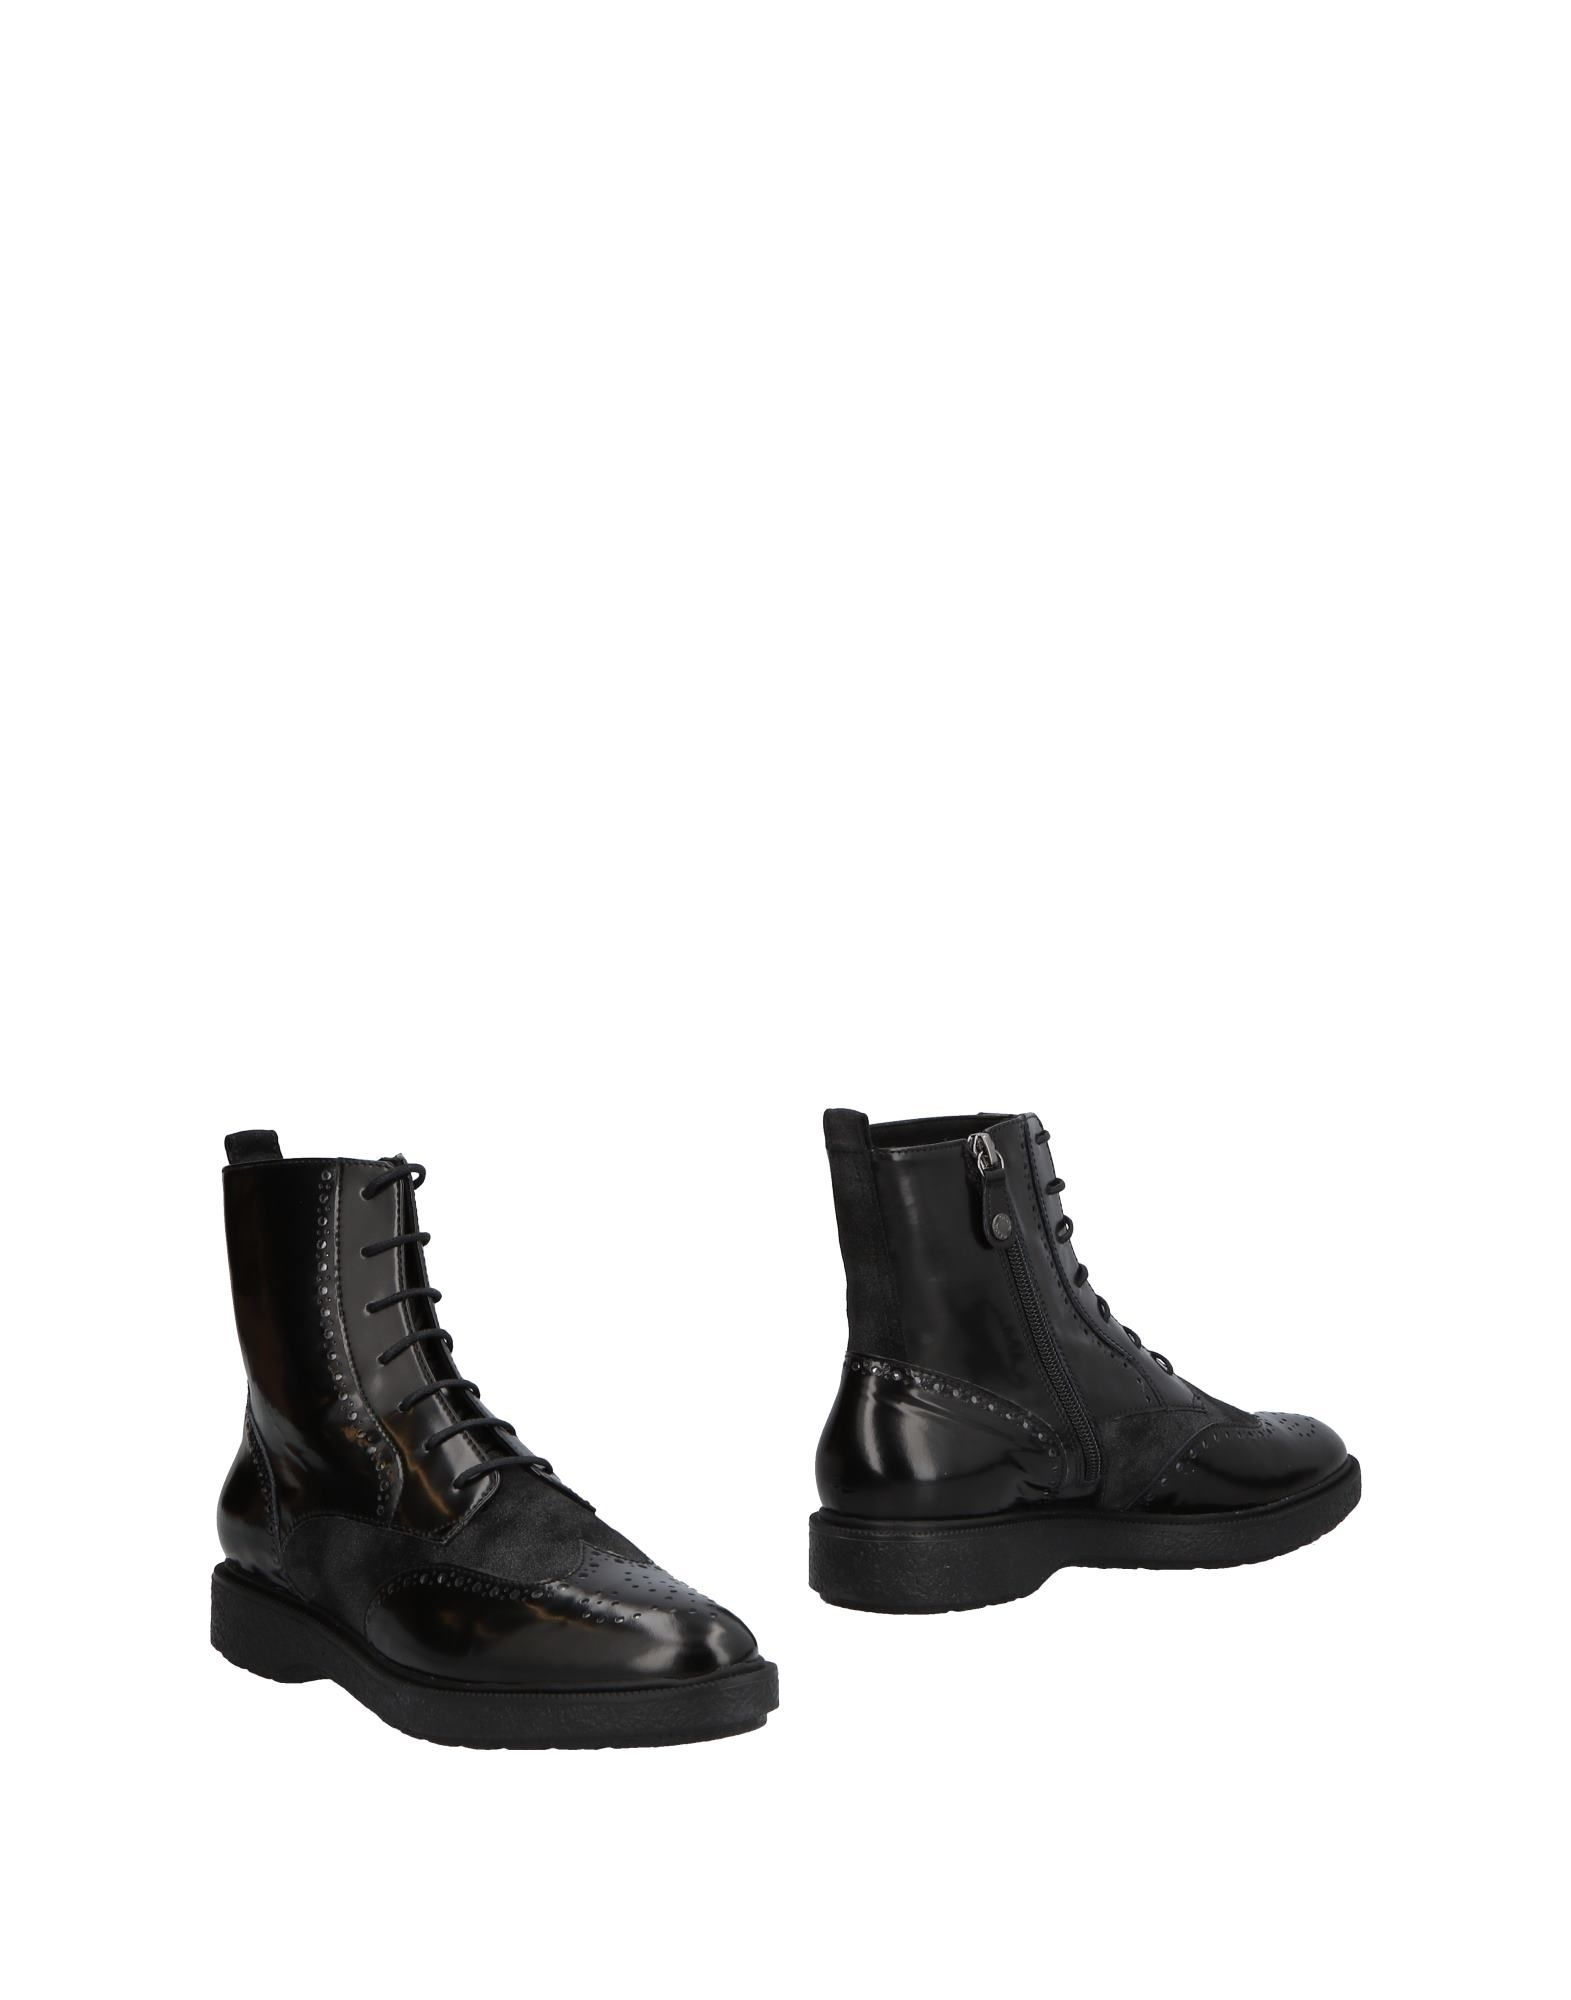 Geox Geox Ankle Boot - Women Geox Geox Ankle Boots online on  United Kingdom - 11496921GL 65516e